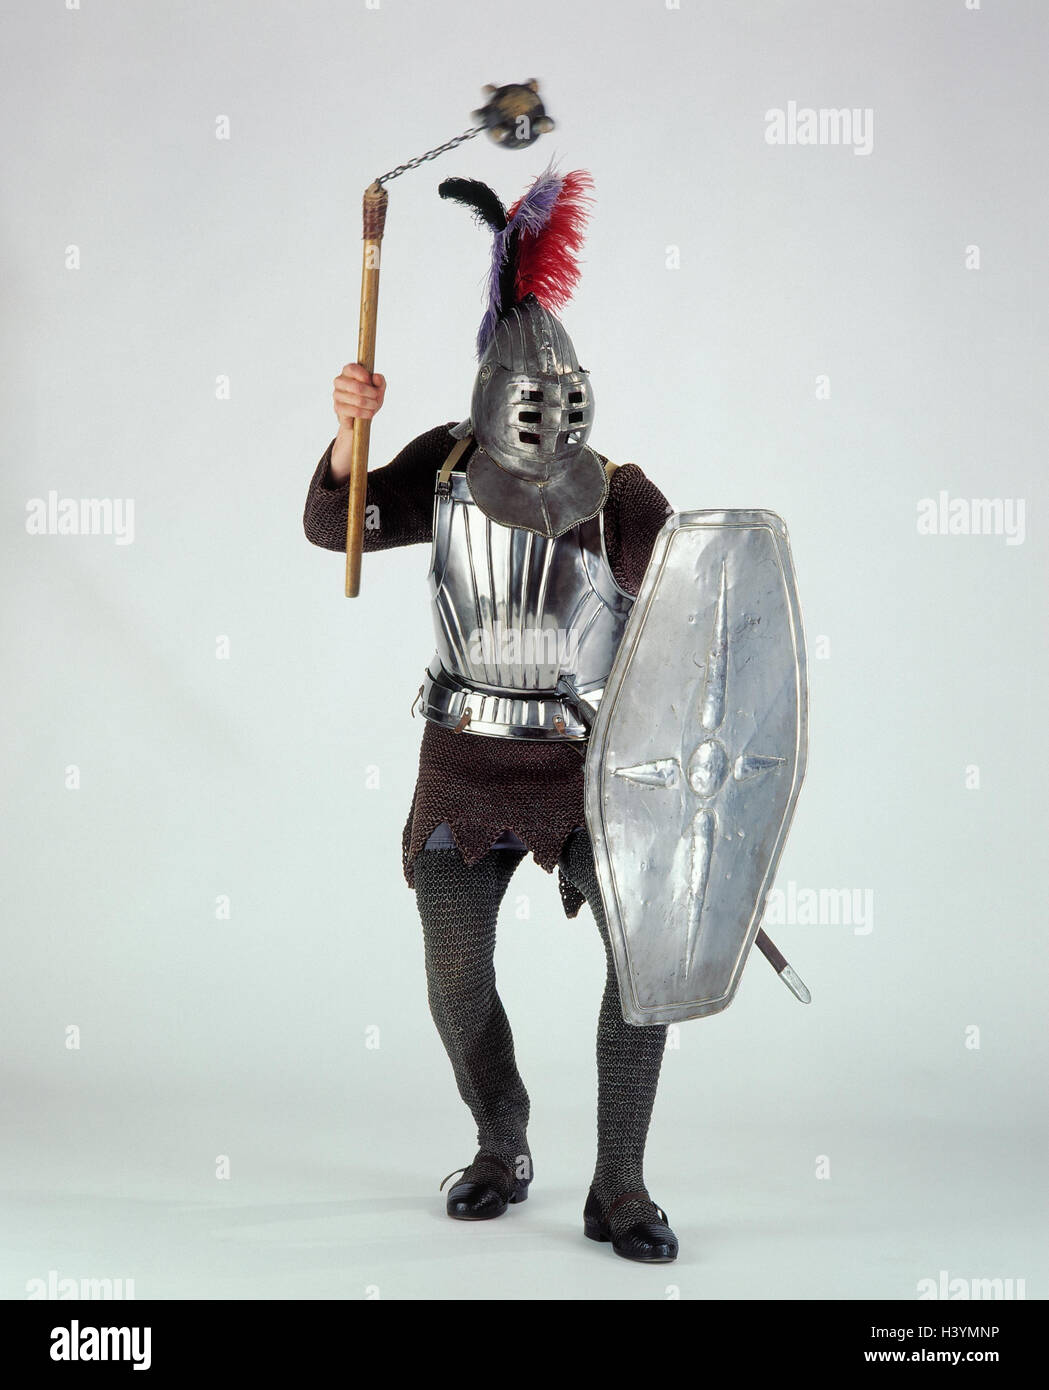 Knights, armament, knight's helmet, shield, weapon, medievally, knight's armament, metal network suit, mammary - Stock Image